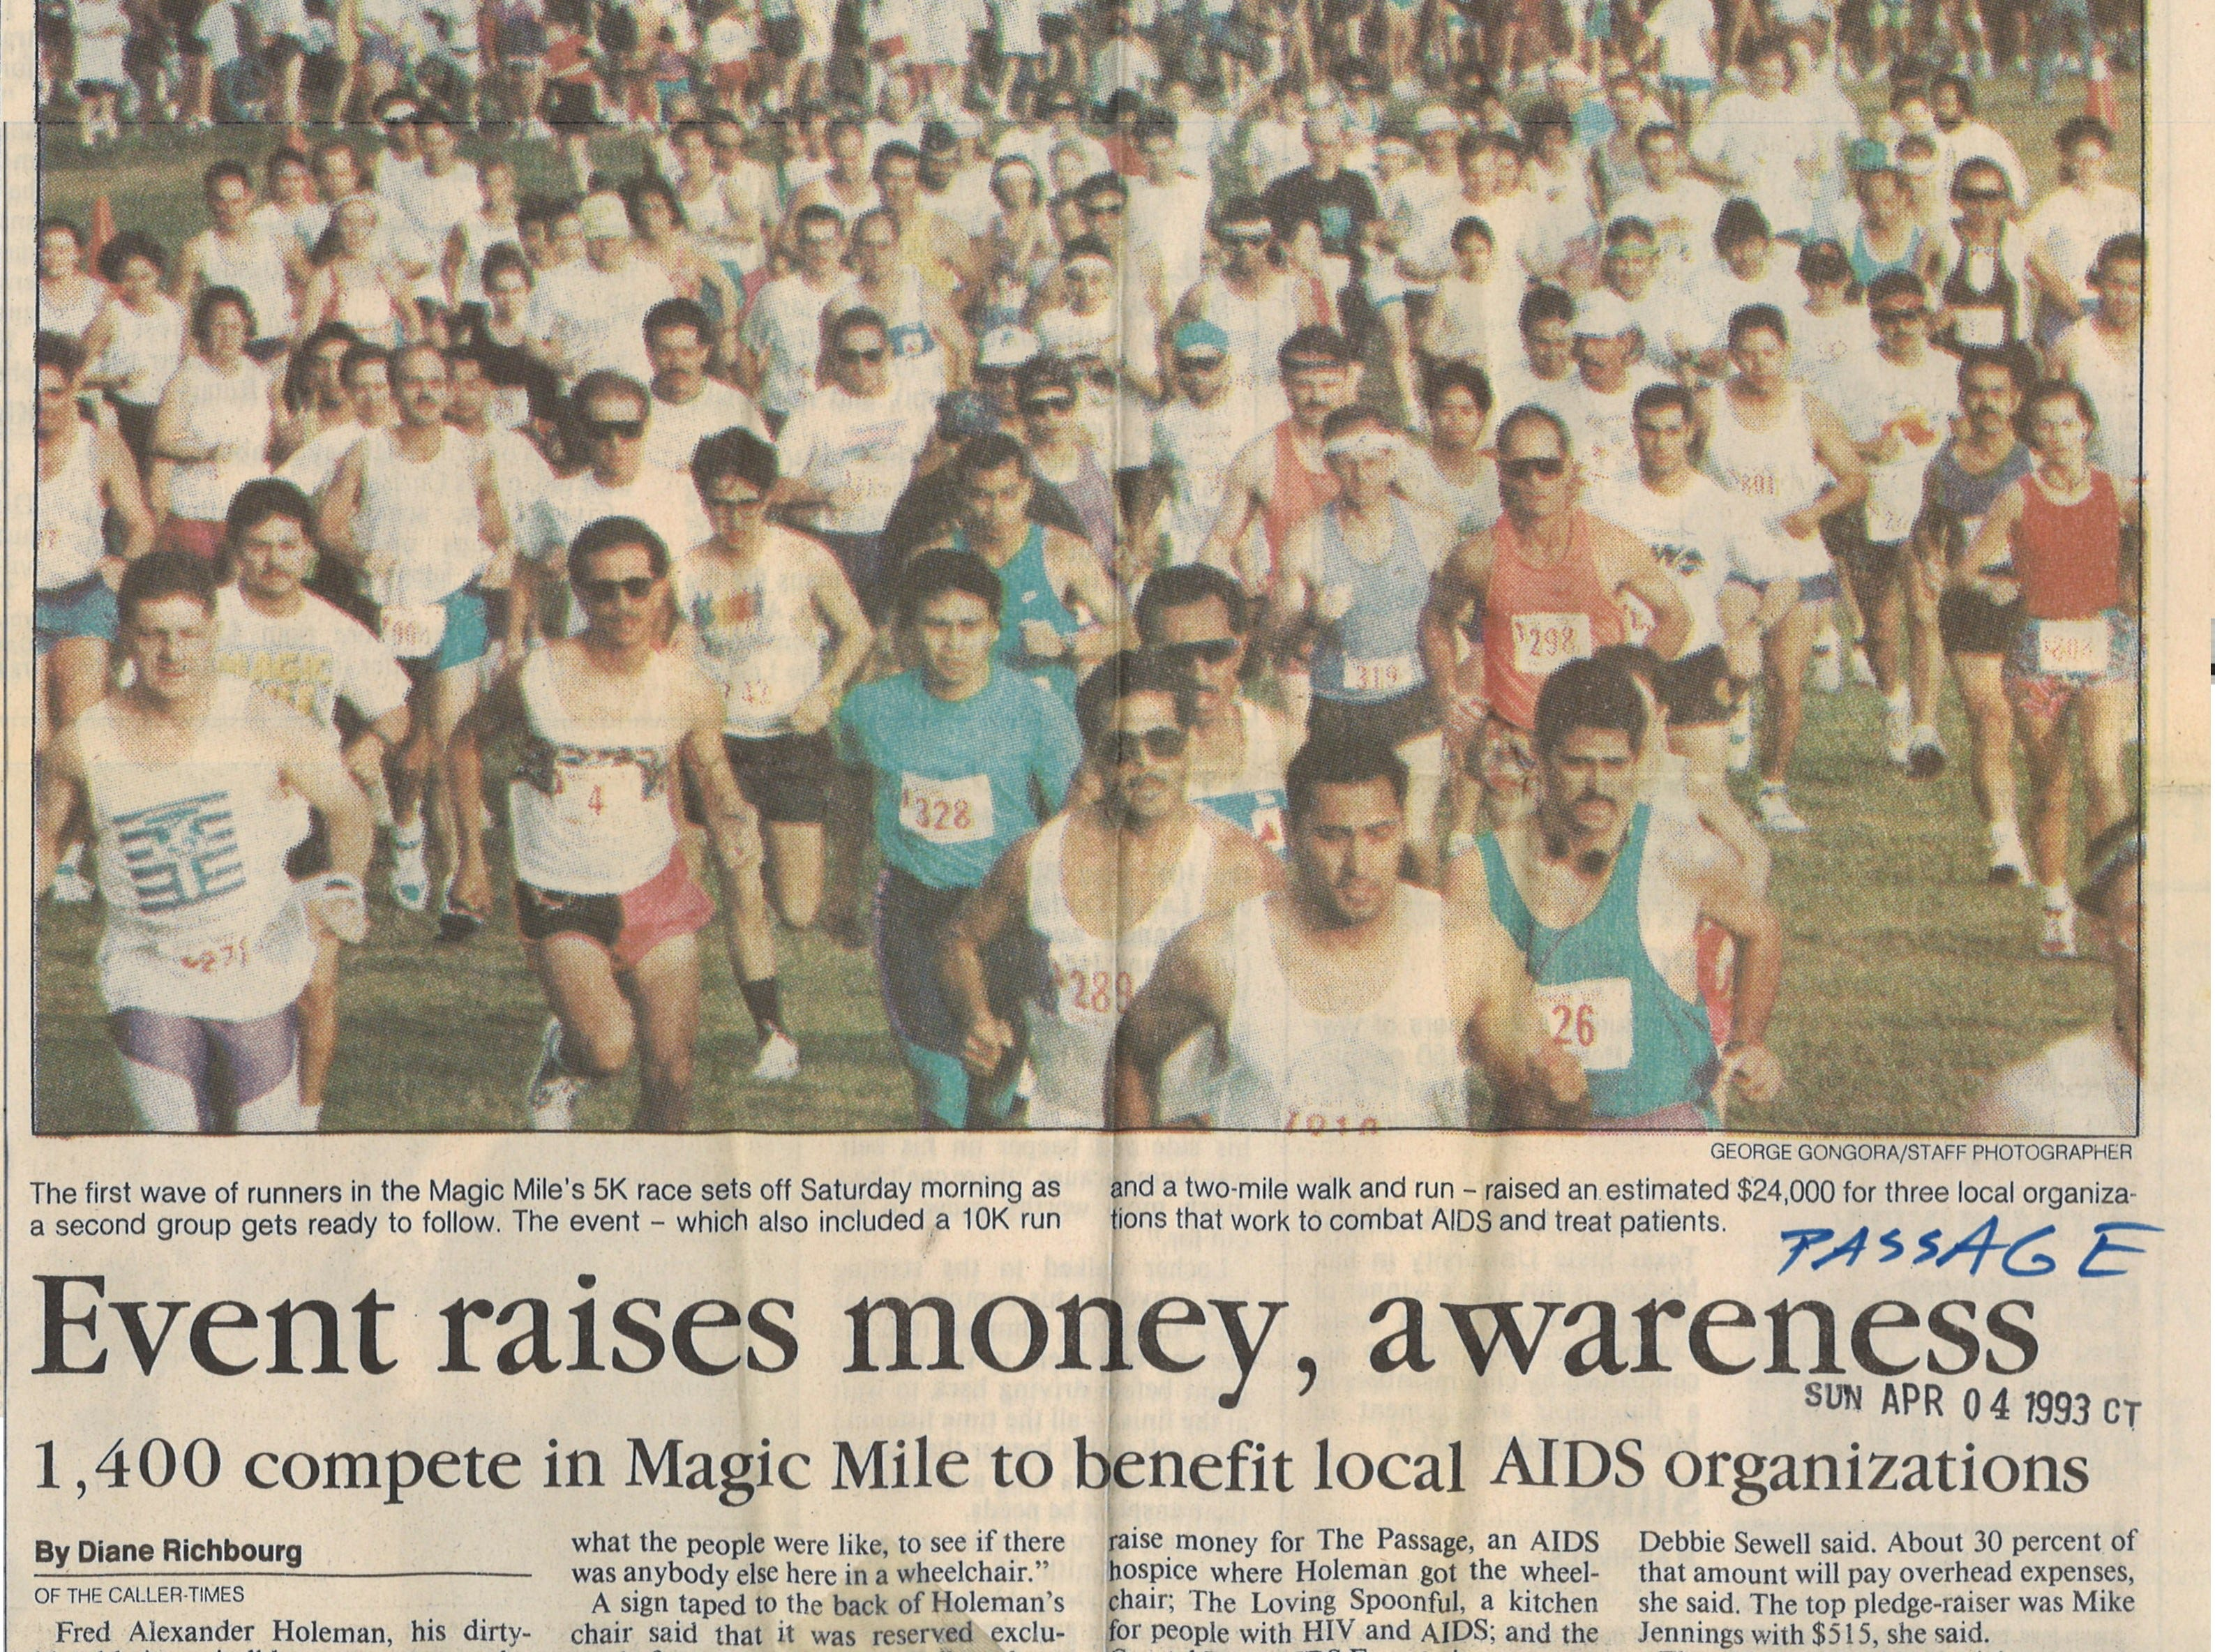 An article from the April 4, 1993 Caller-Times featuring coverage on the Magic Mile benefit to help local AIDS organizations.